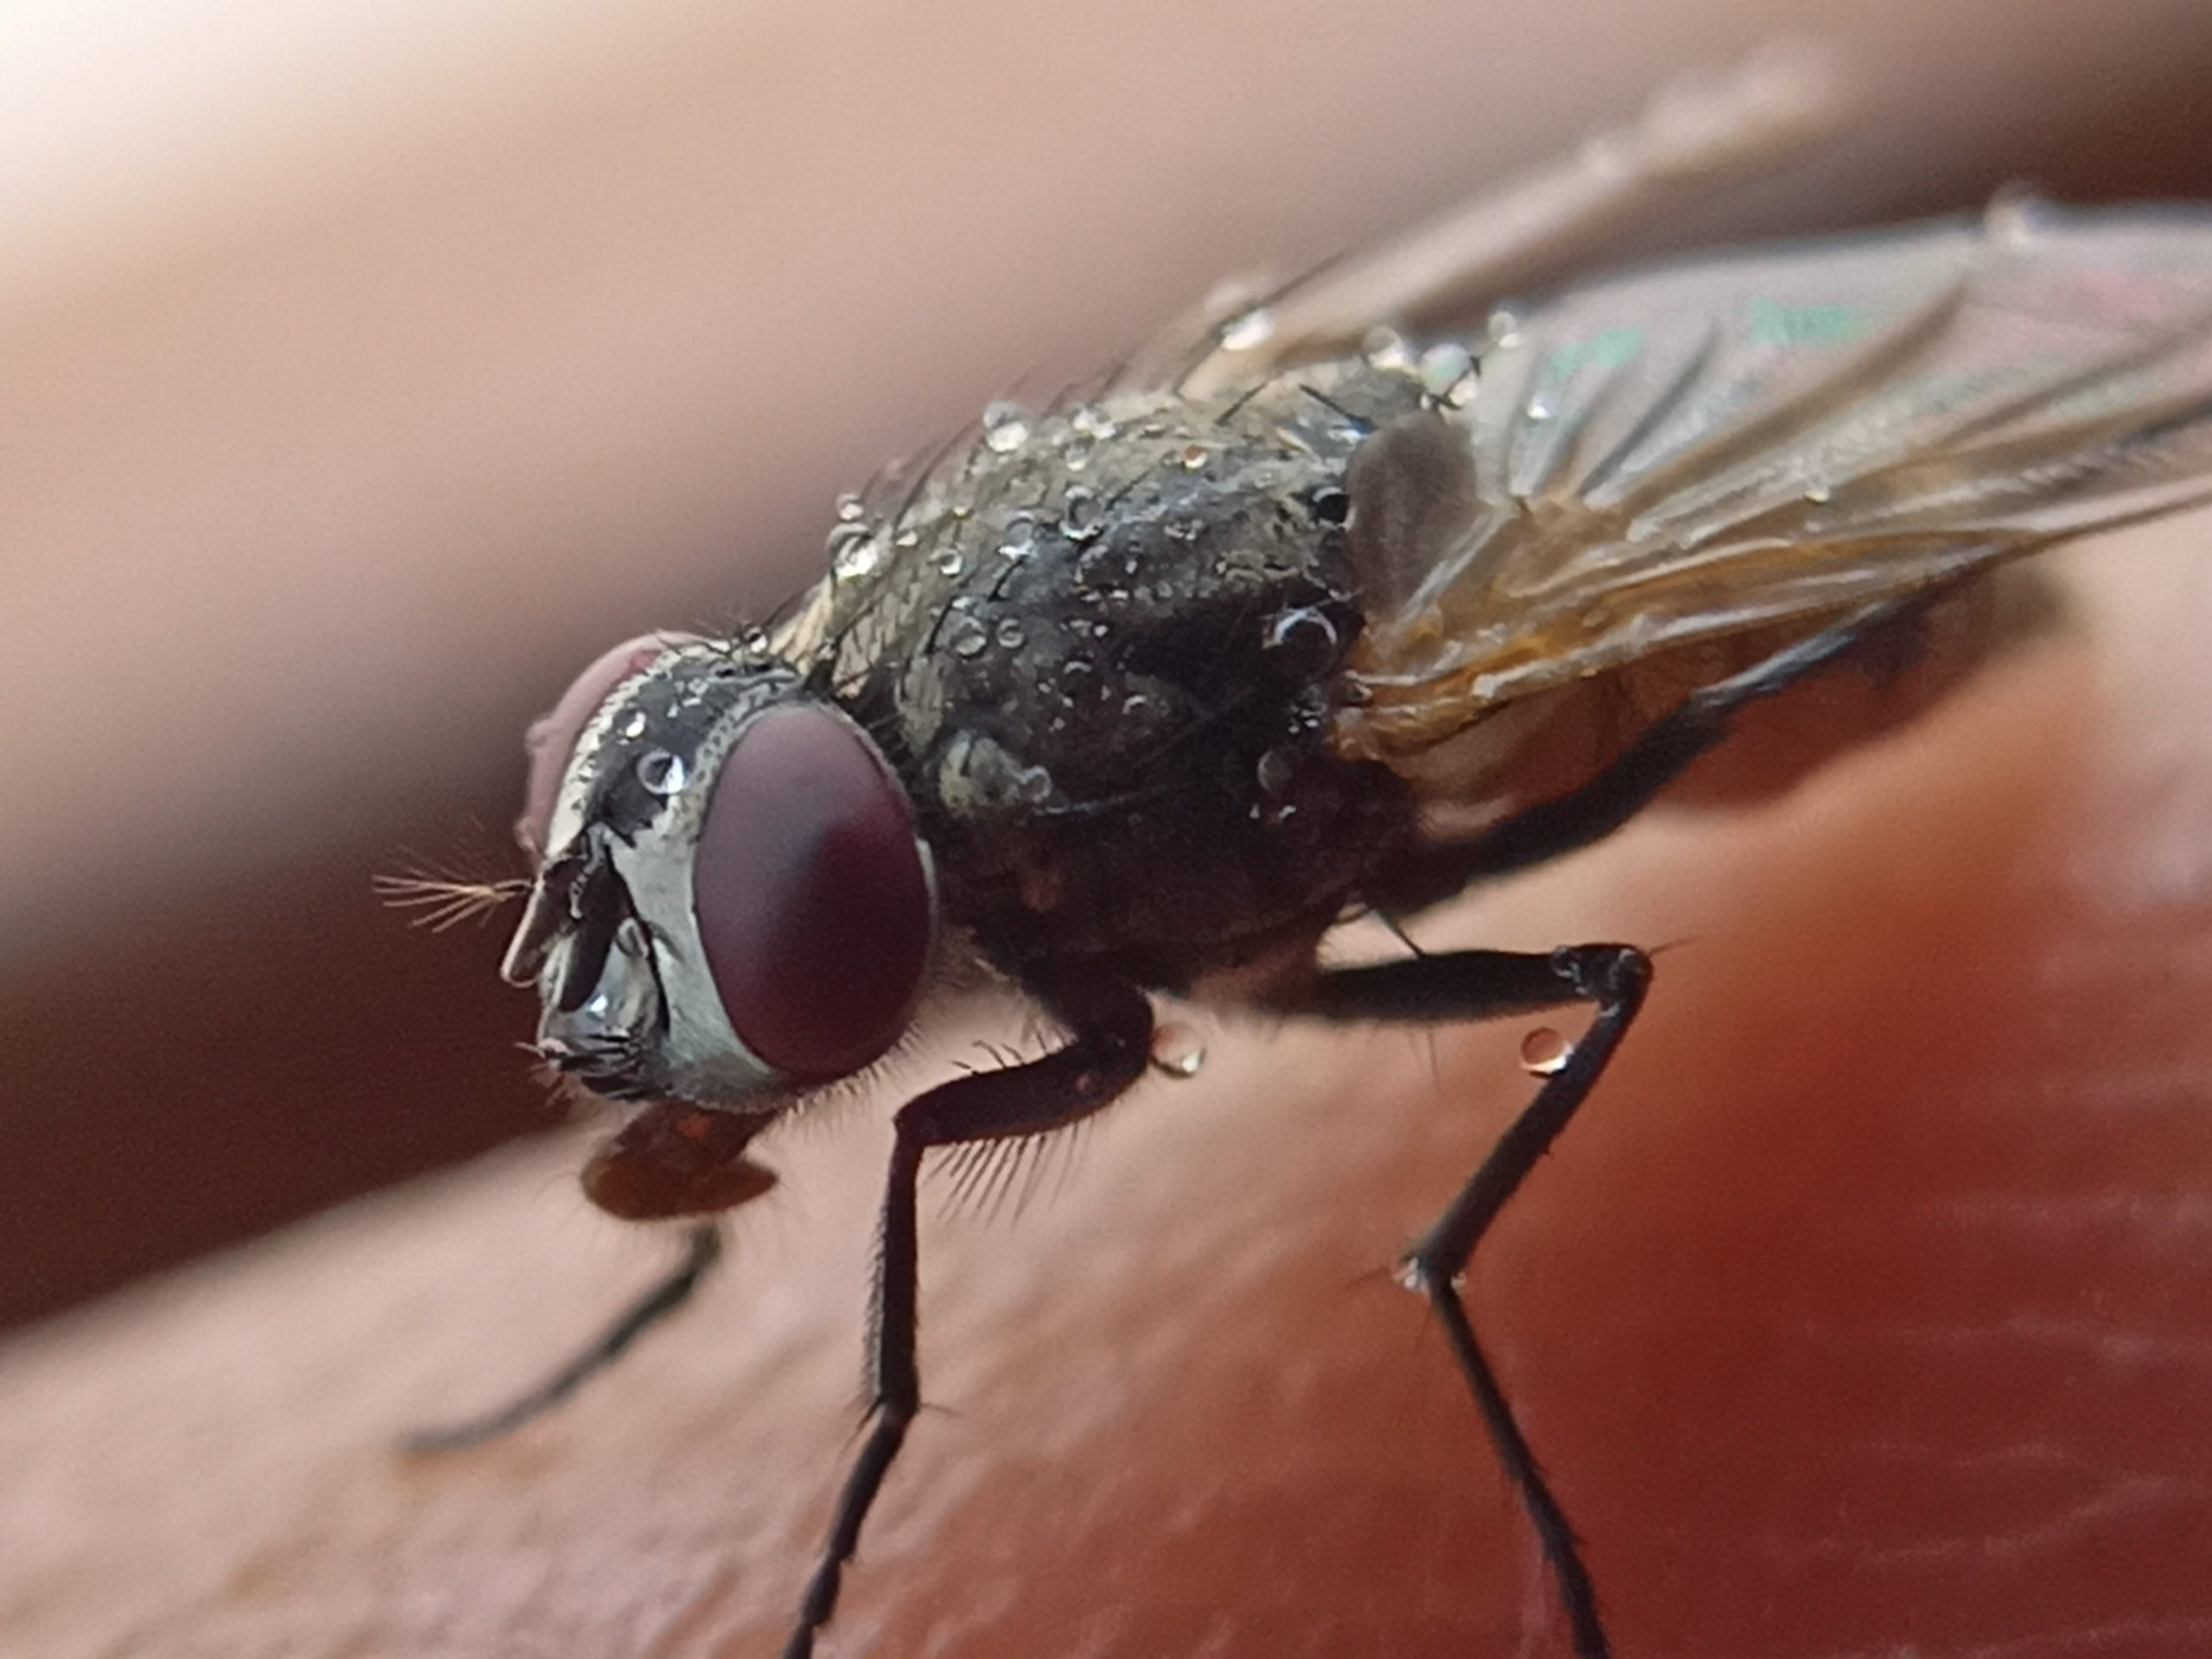 Water drops on housefly